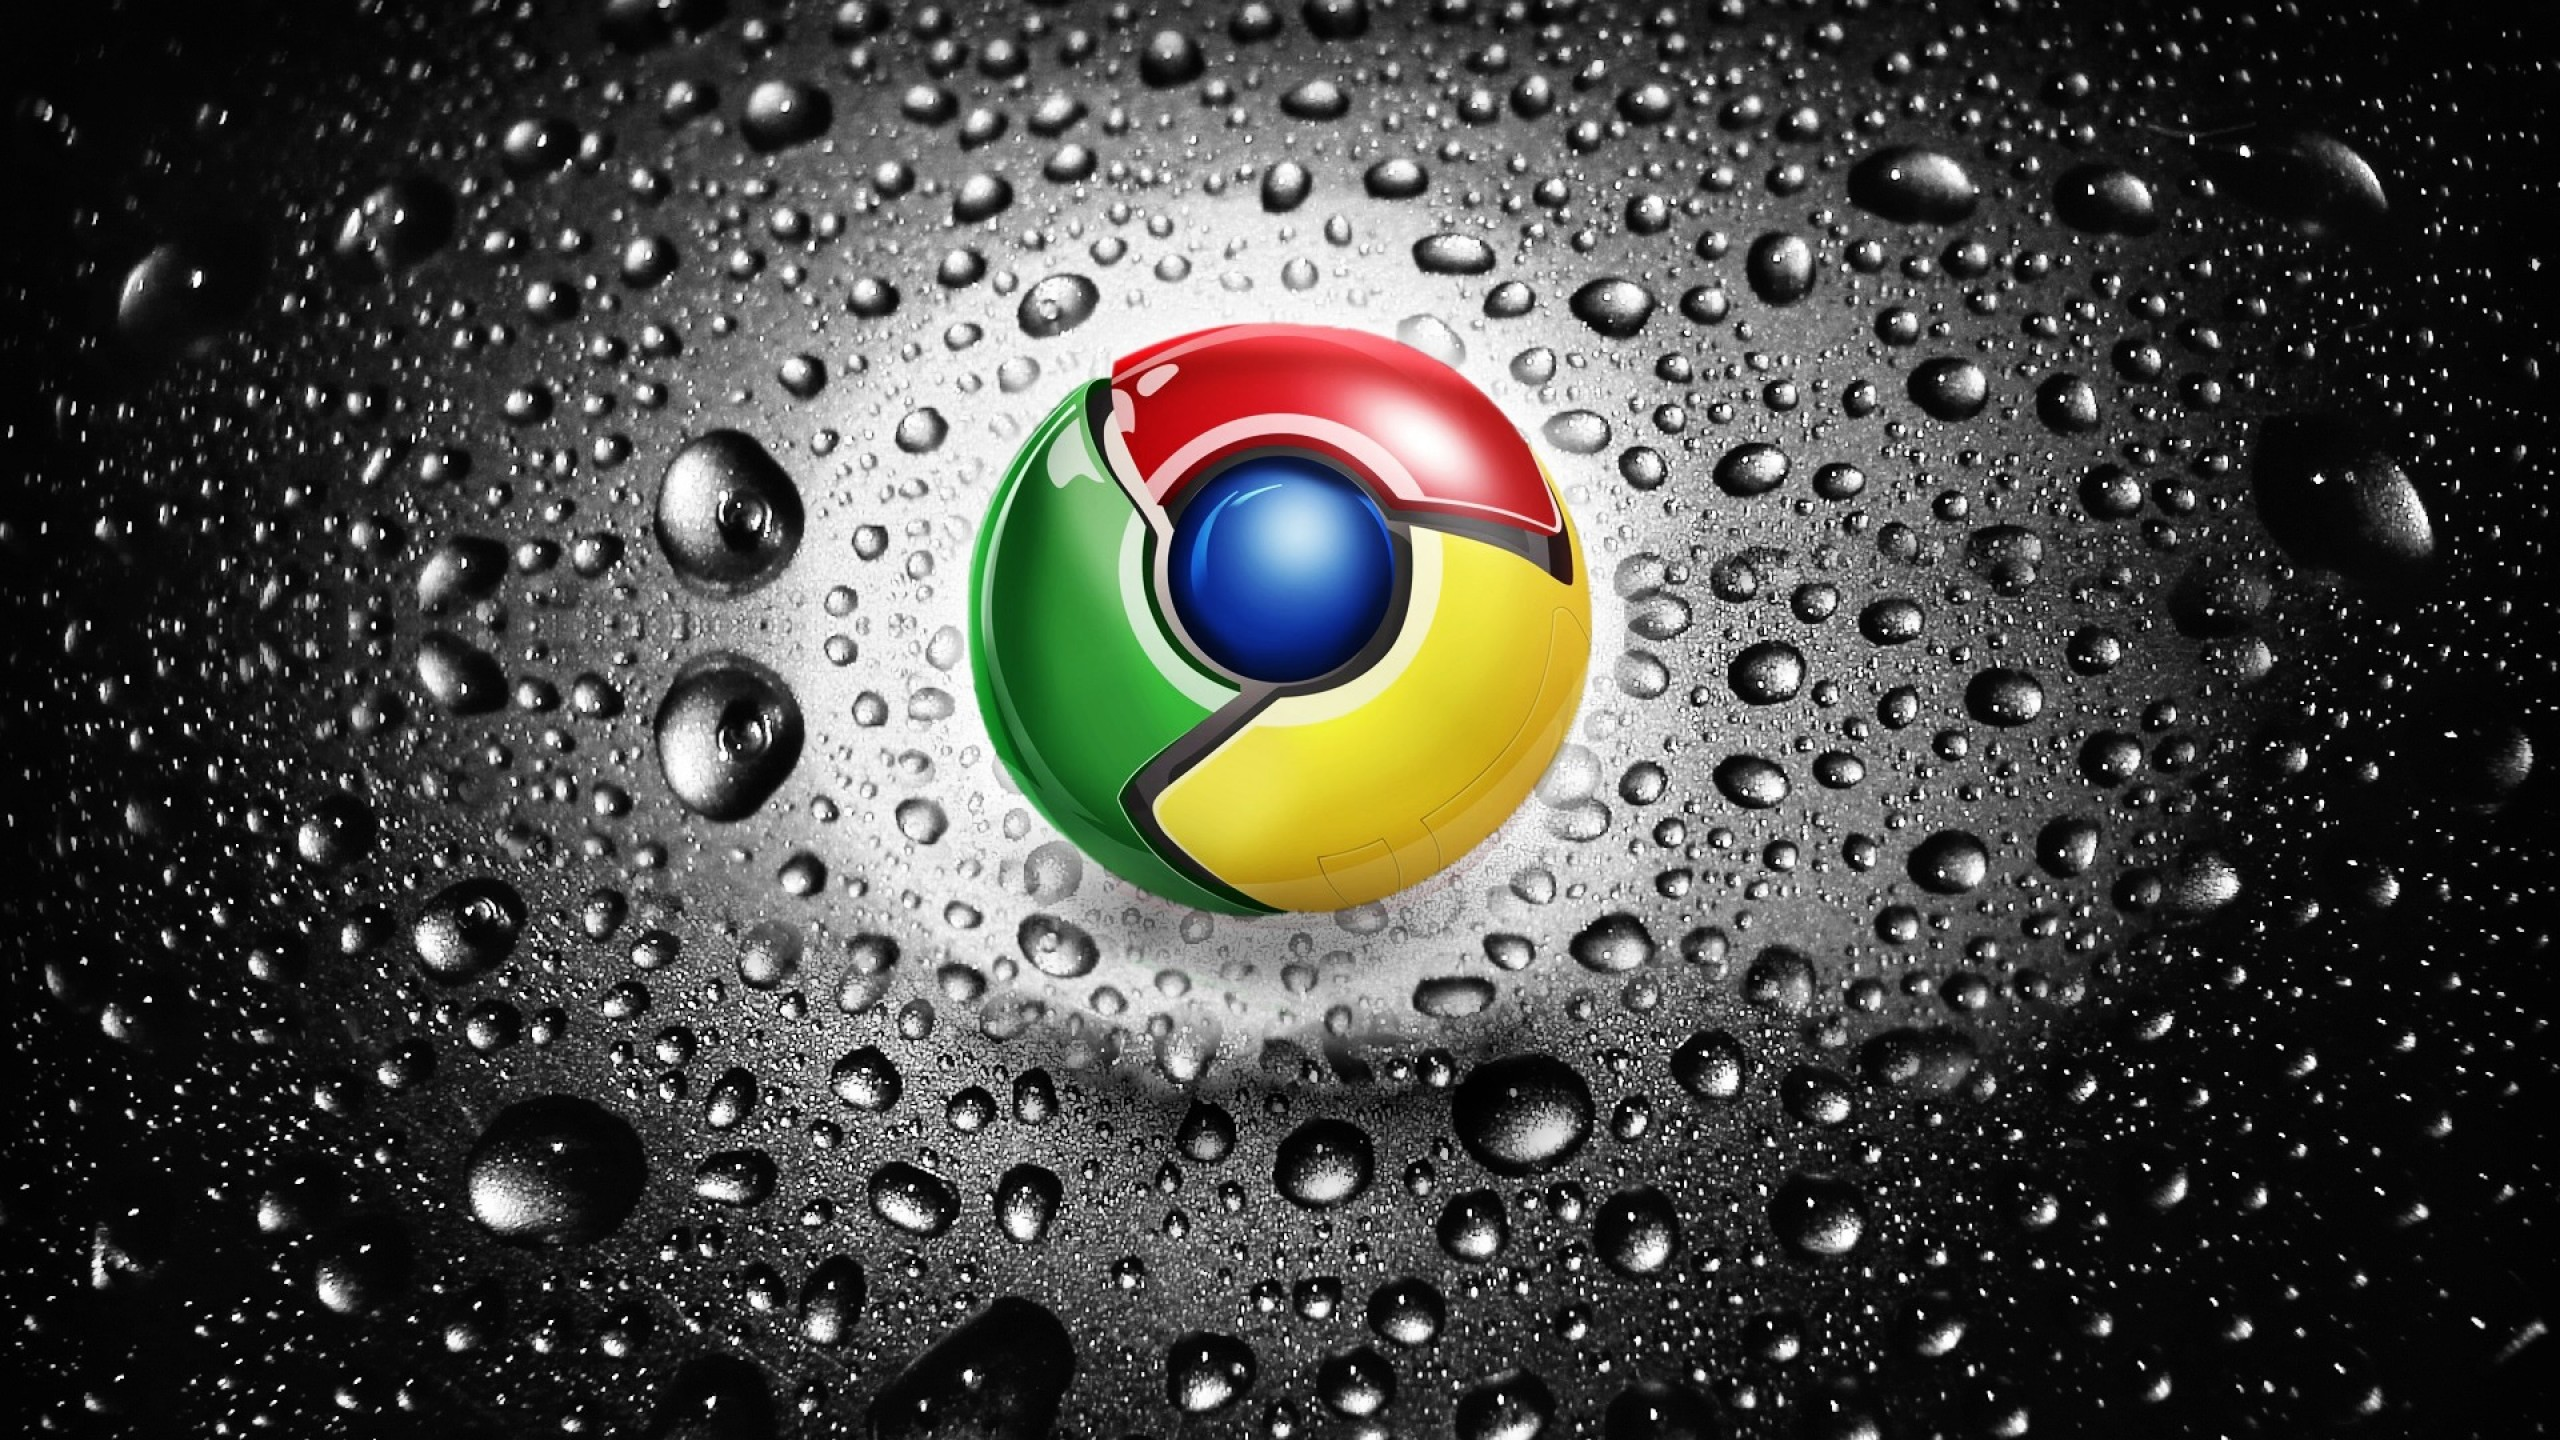 Google ChromeOS wallpaper – Fantastic Picture design For Your New Computer